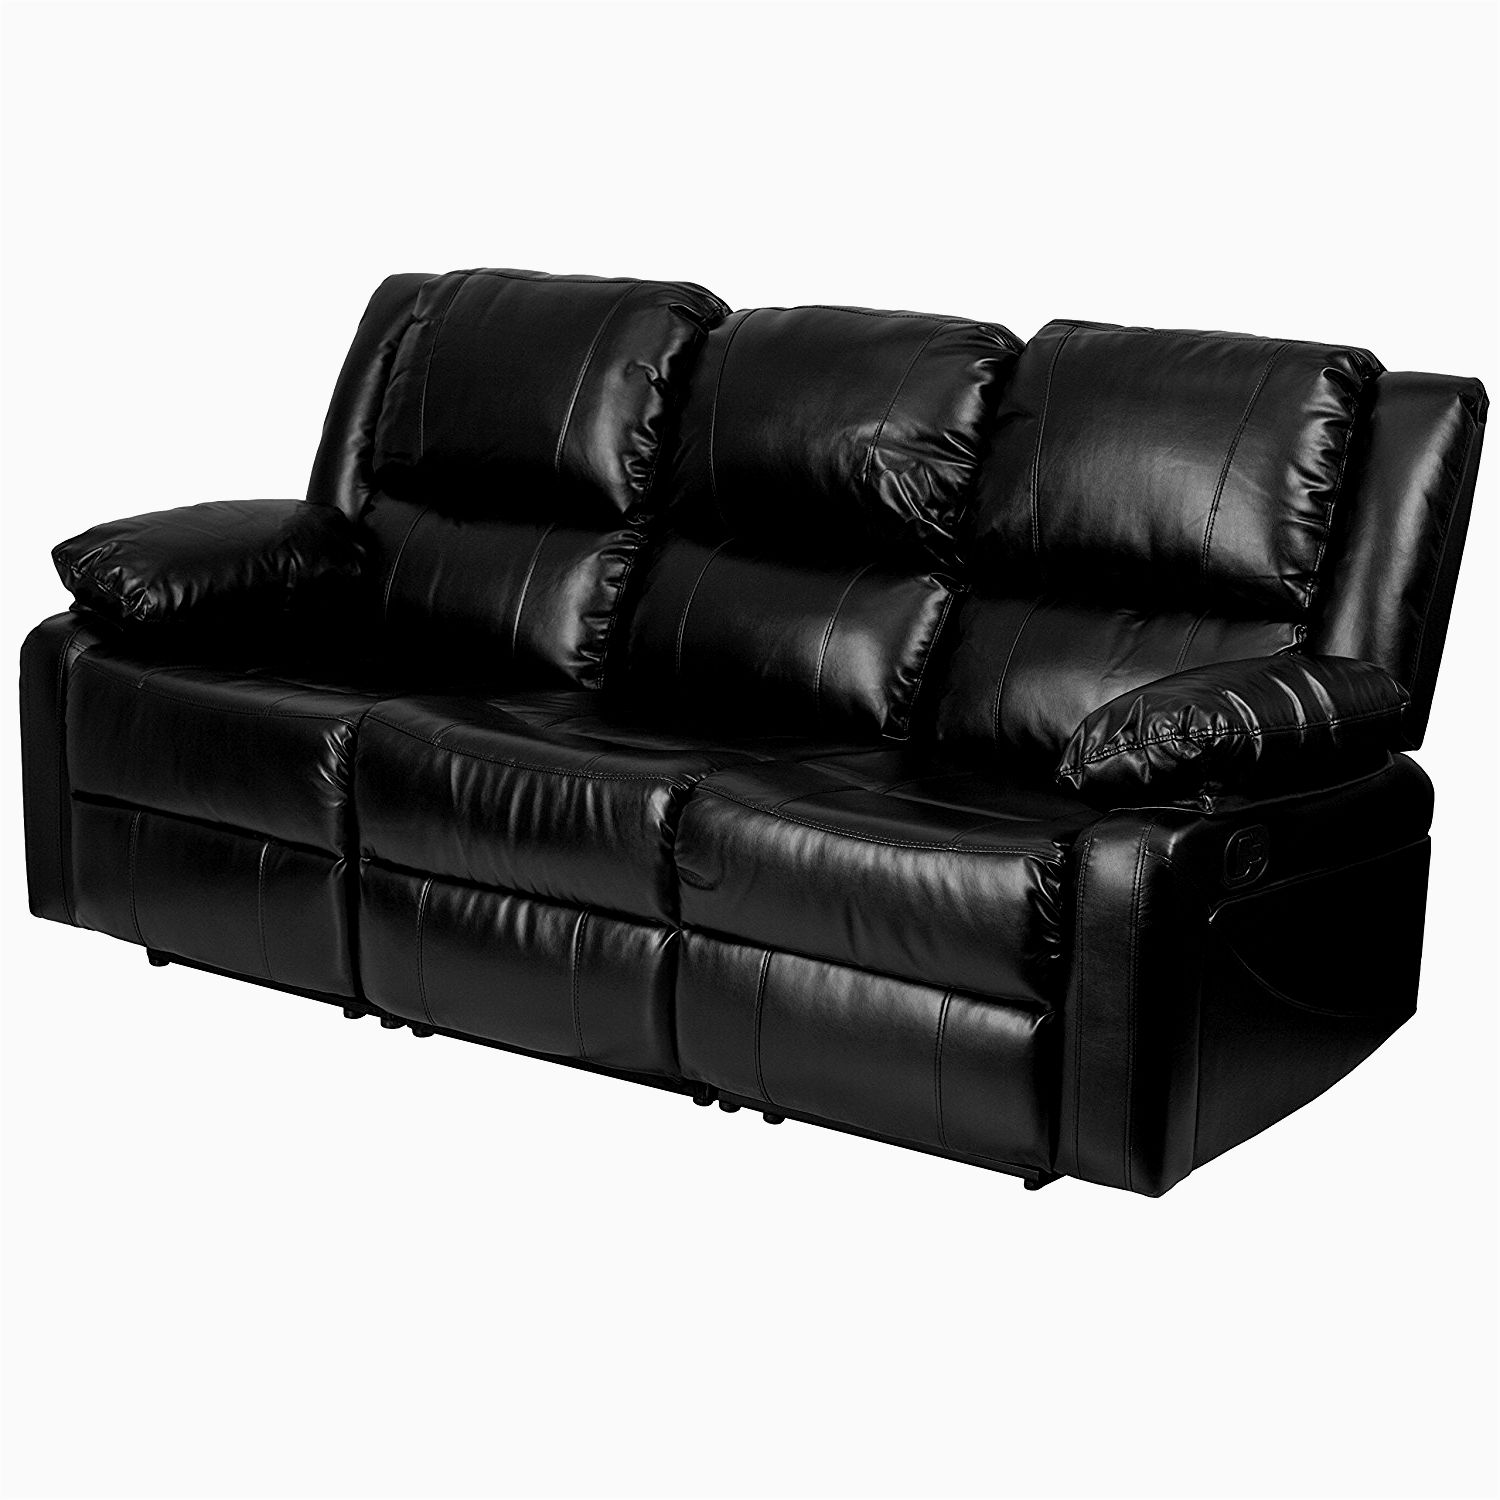 fresh electric recliner sofa photograph-Luxury Electric Recliner sofa Image